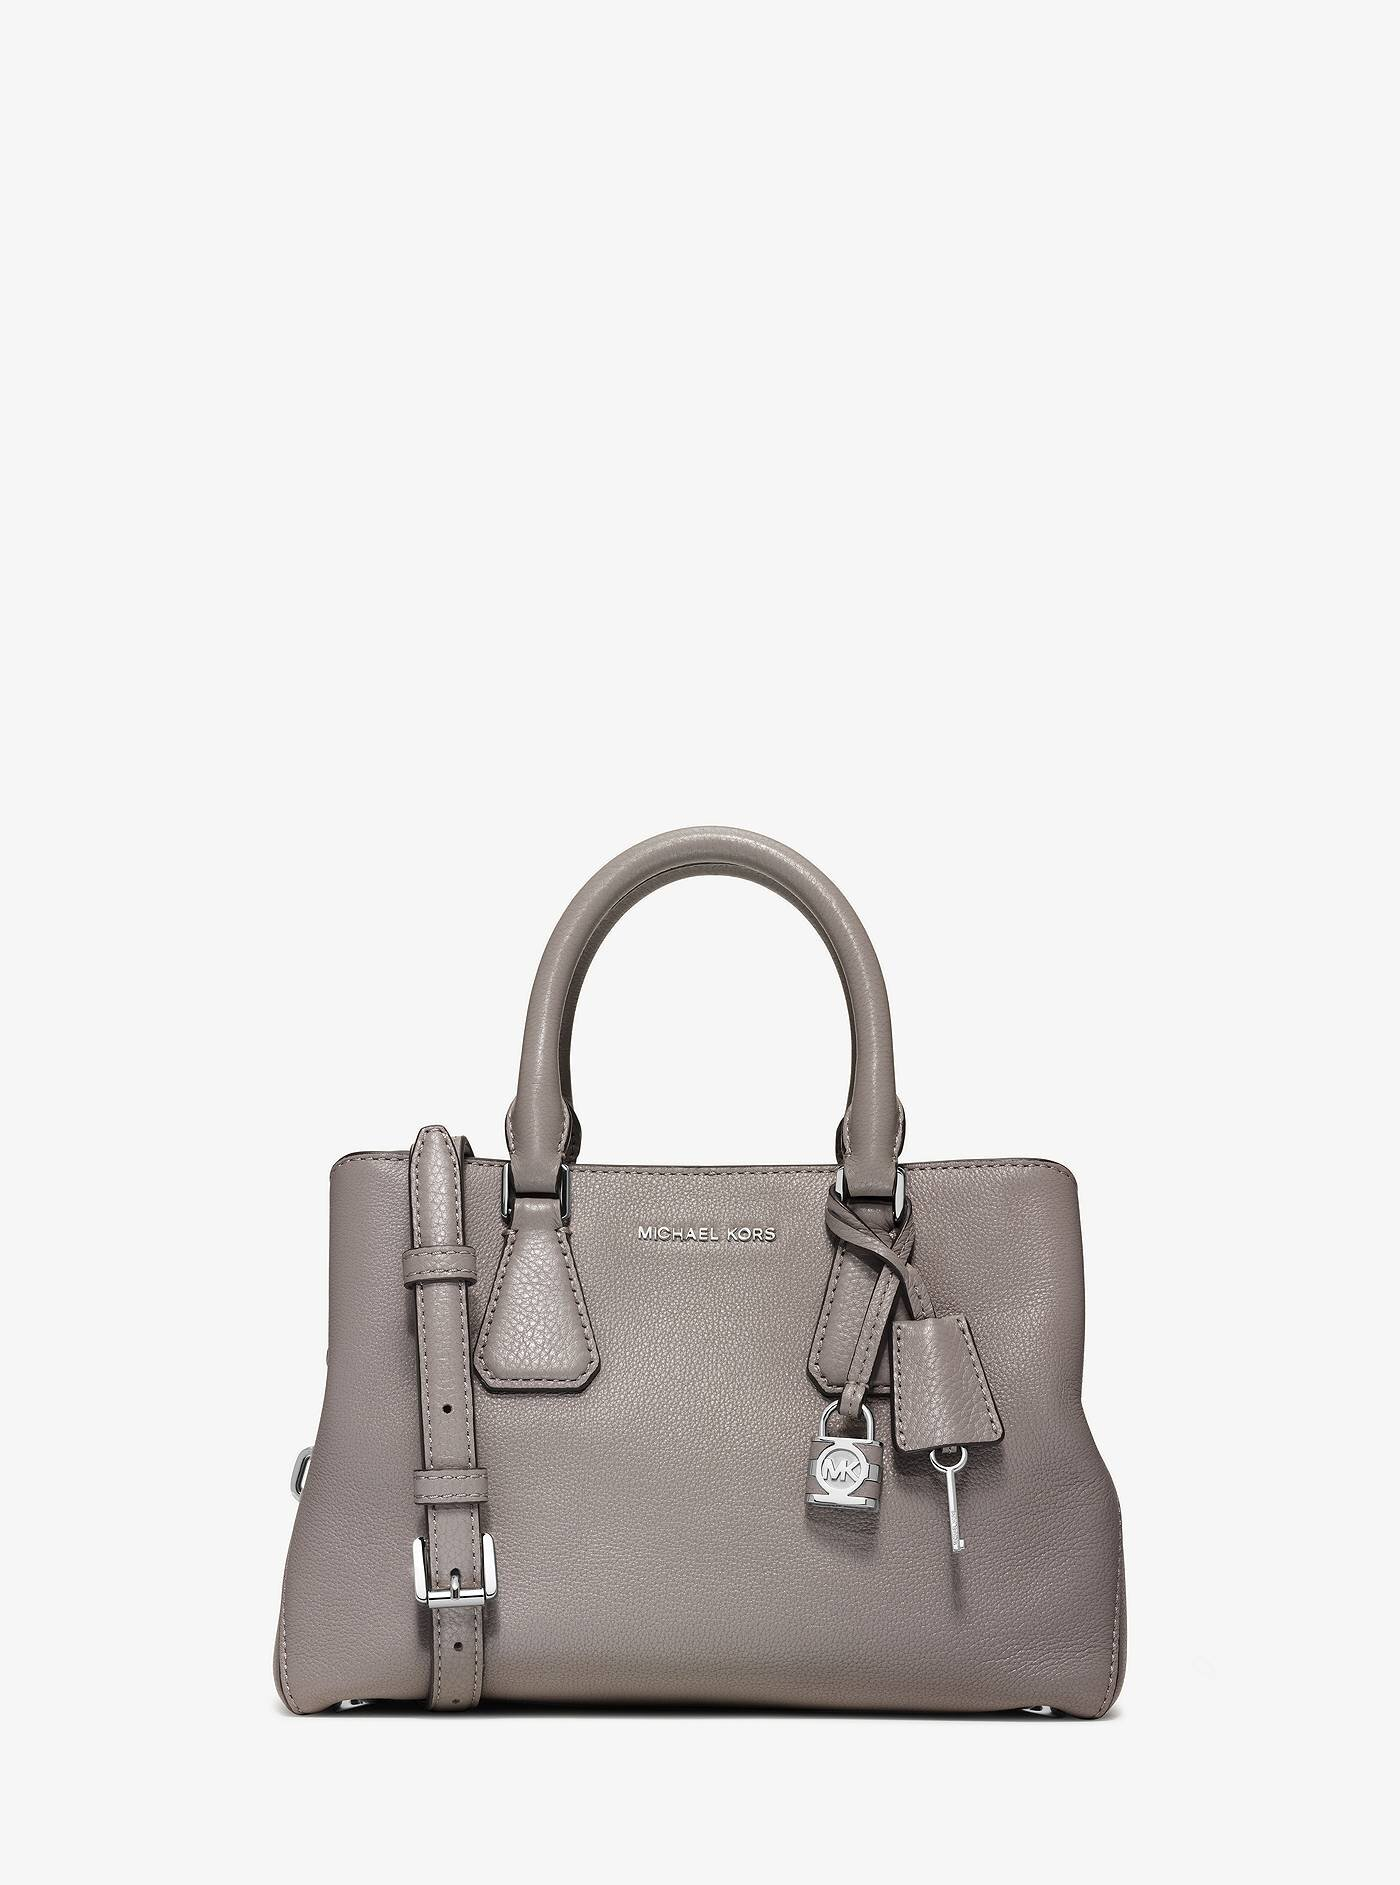 Camille Small Leather Satchel